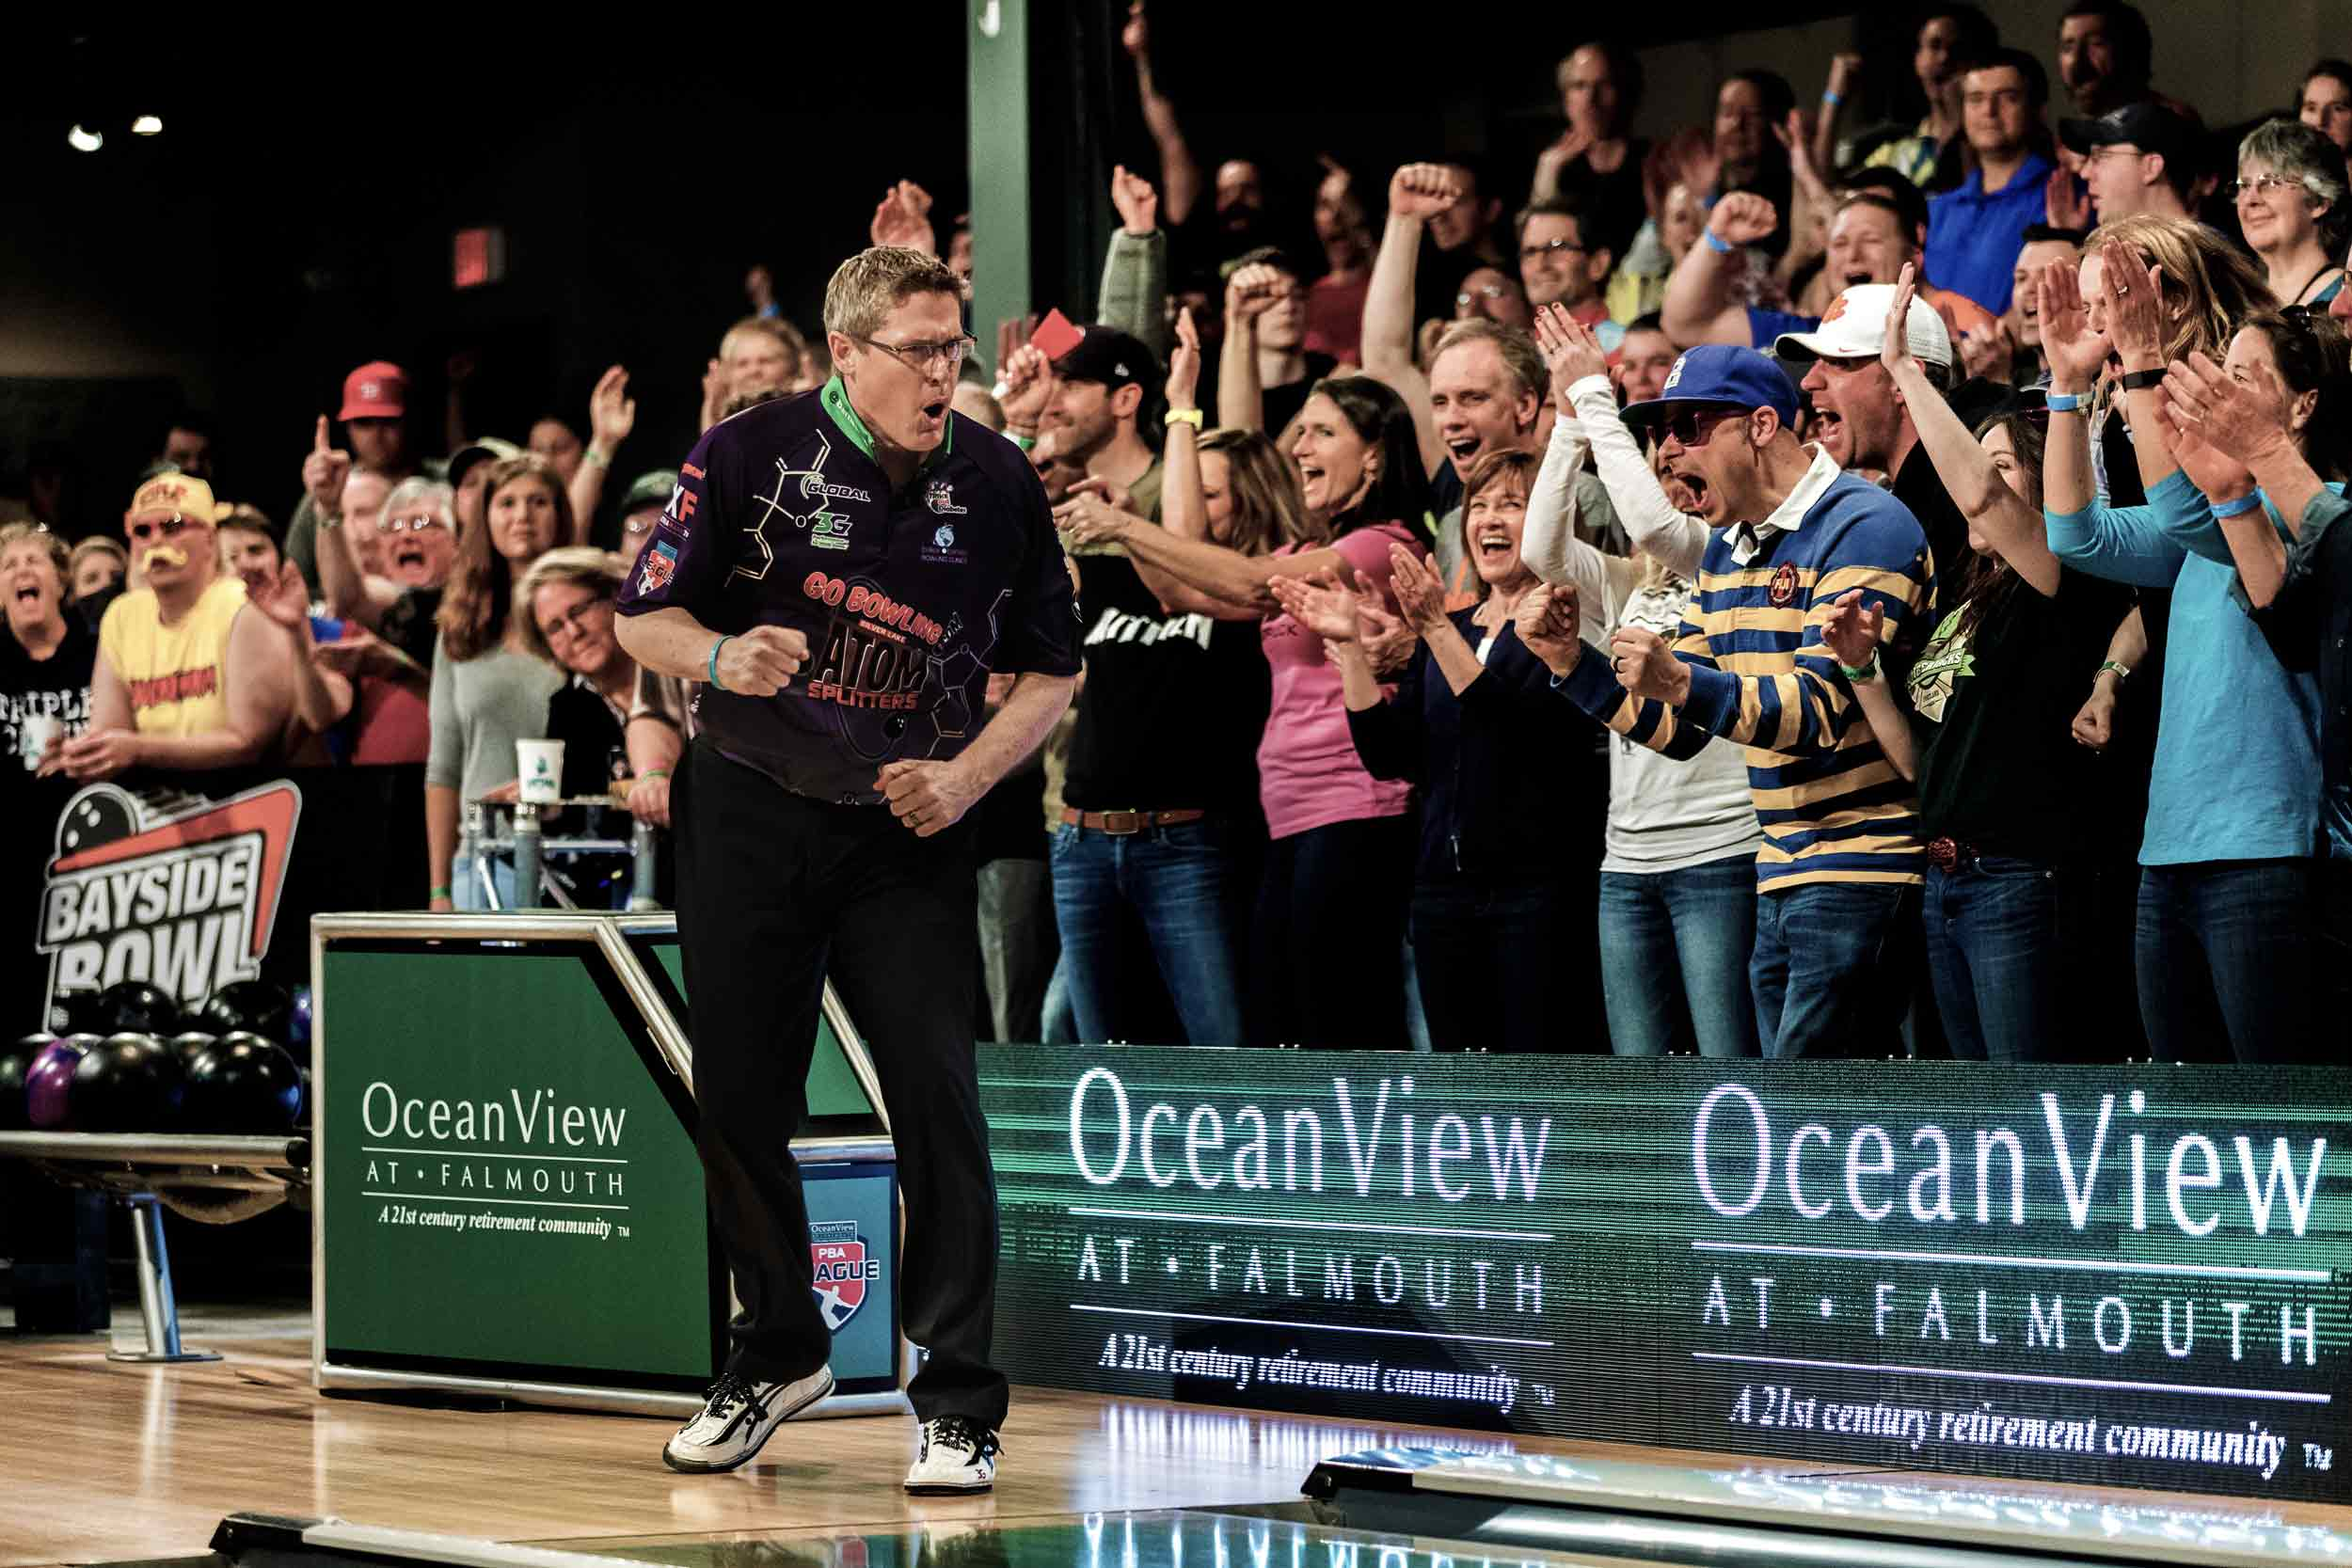 Professional bowler pumping his fist in front of large cheering crowd at Bayside Bowl